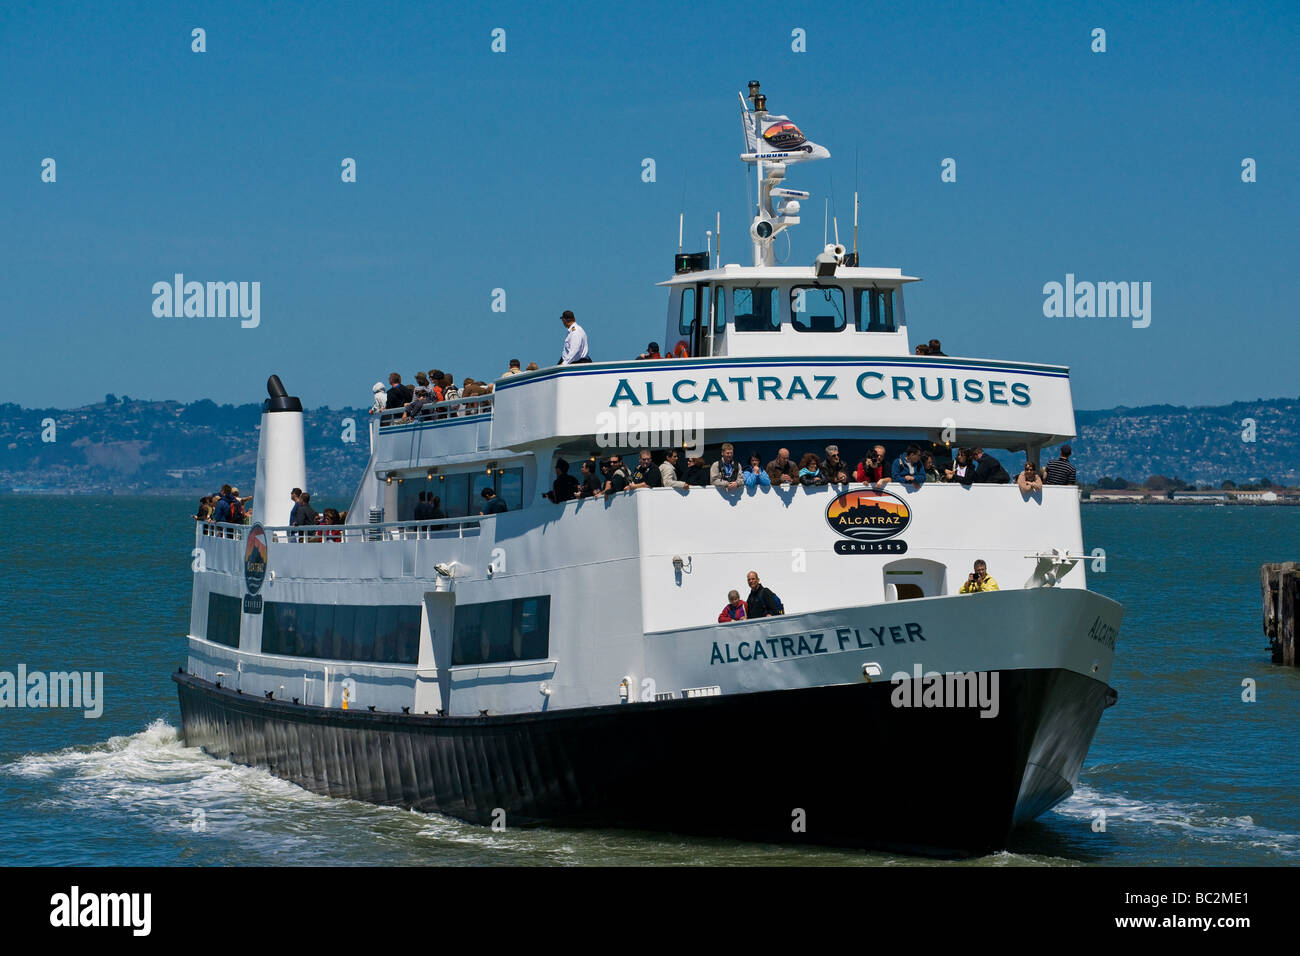 A tour boat departs the pier for Alcatraz Island. - Stock Image